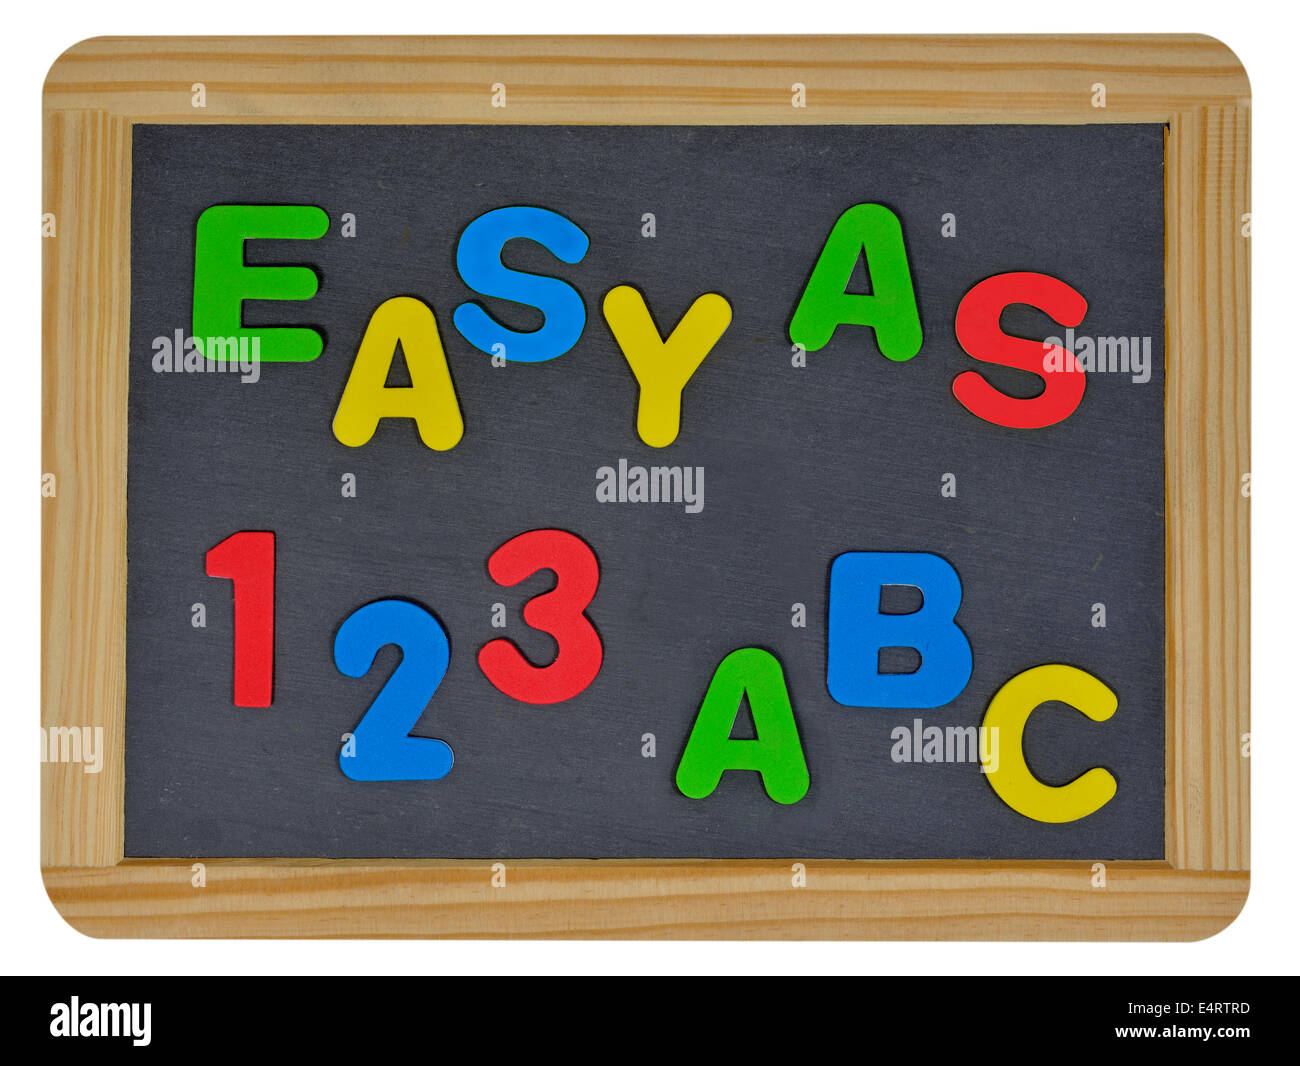 Easy as 123 ABC in colored letters written on traditional slate - Stock Image